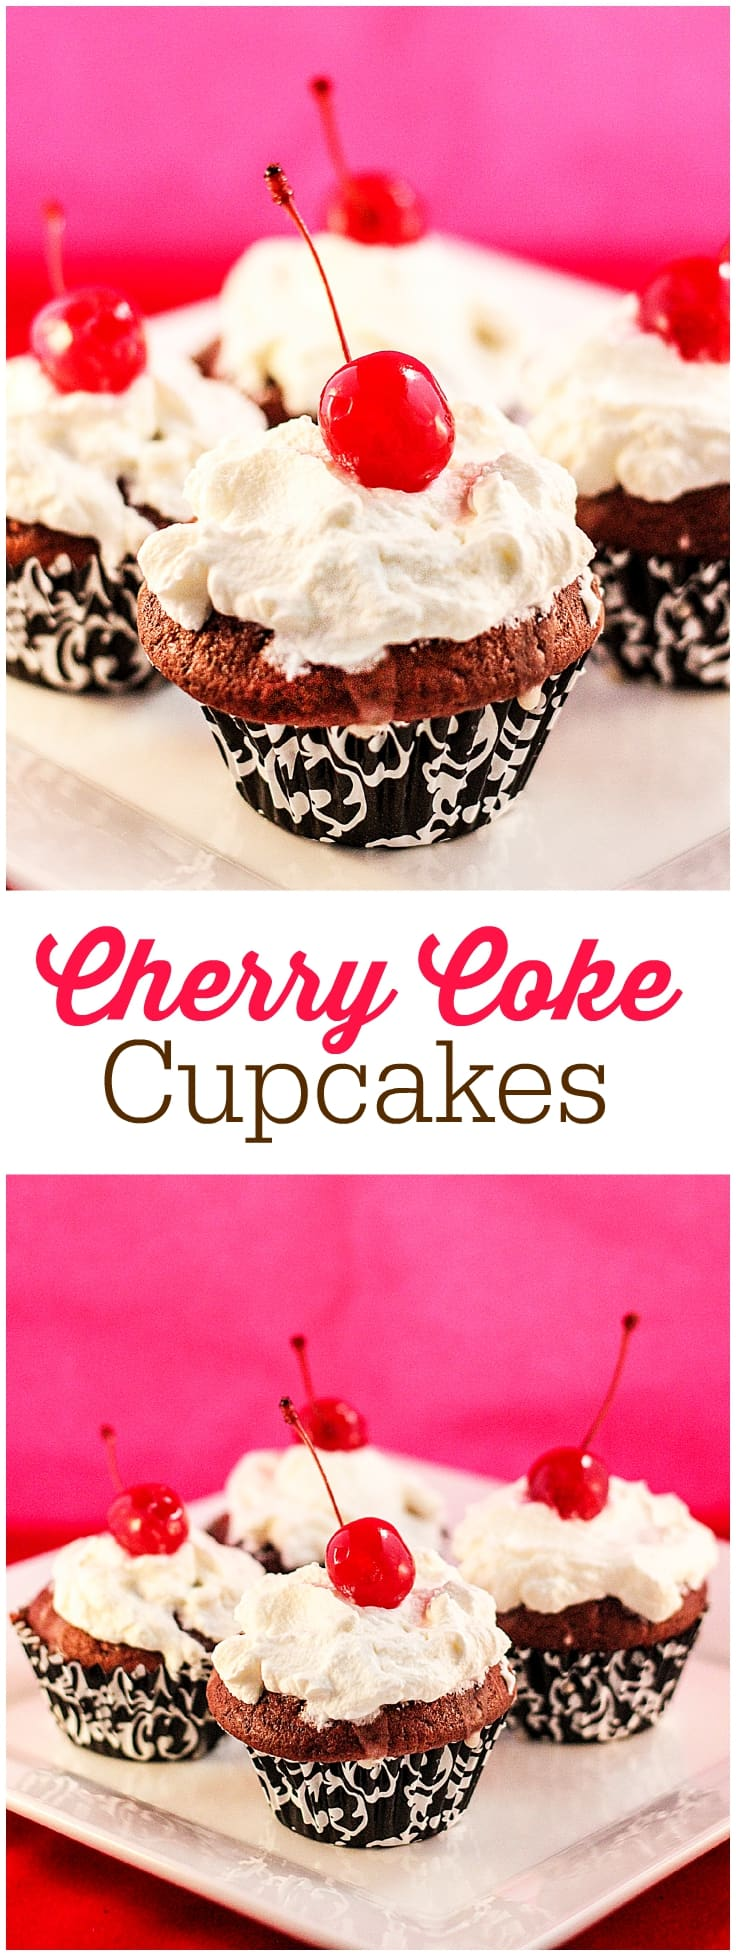 Cherry Coke Cupcakes - Each cupcake has a cherry in the middle, glazed with a Coca-Coca sugar glaze and topped with sweet and fluffy whipped cream. Super yum.